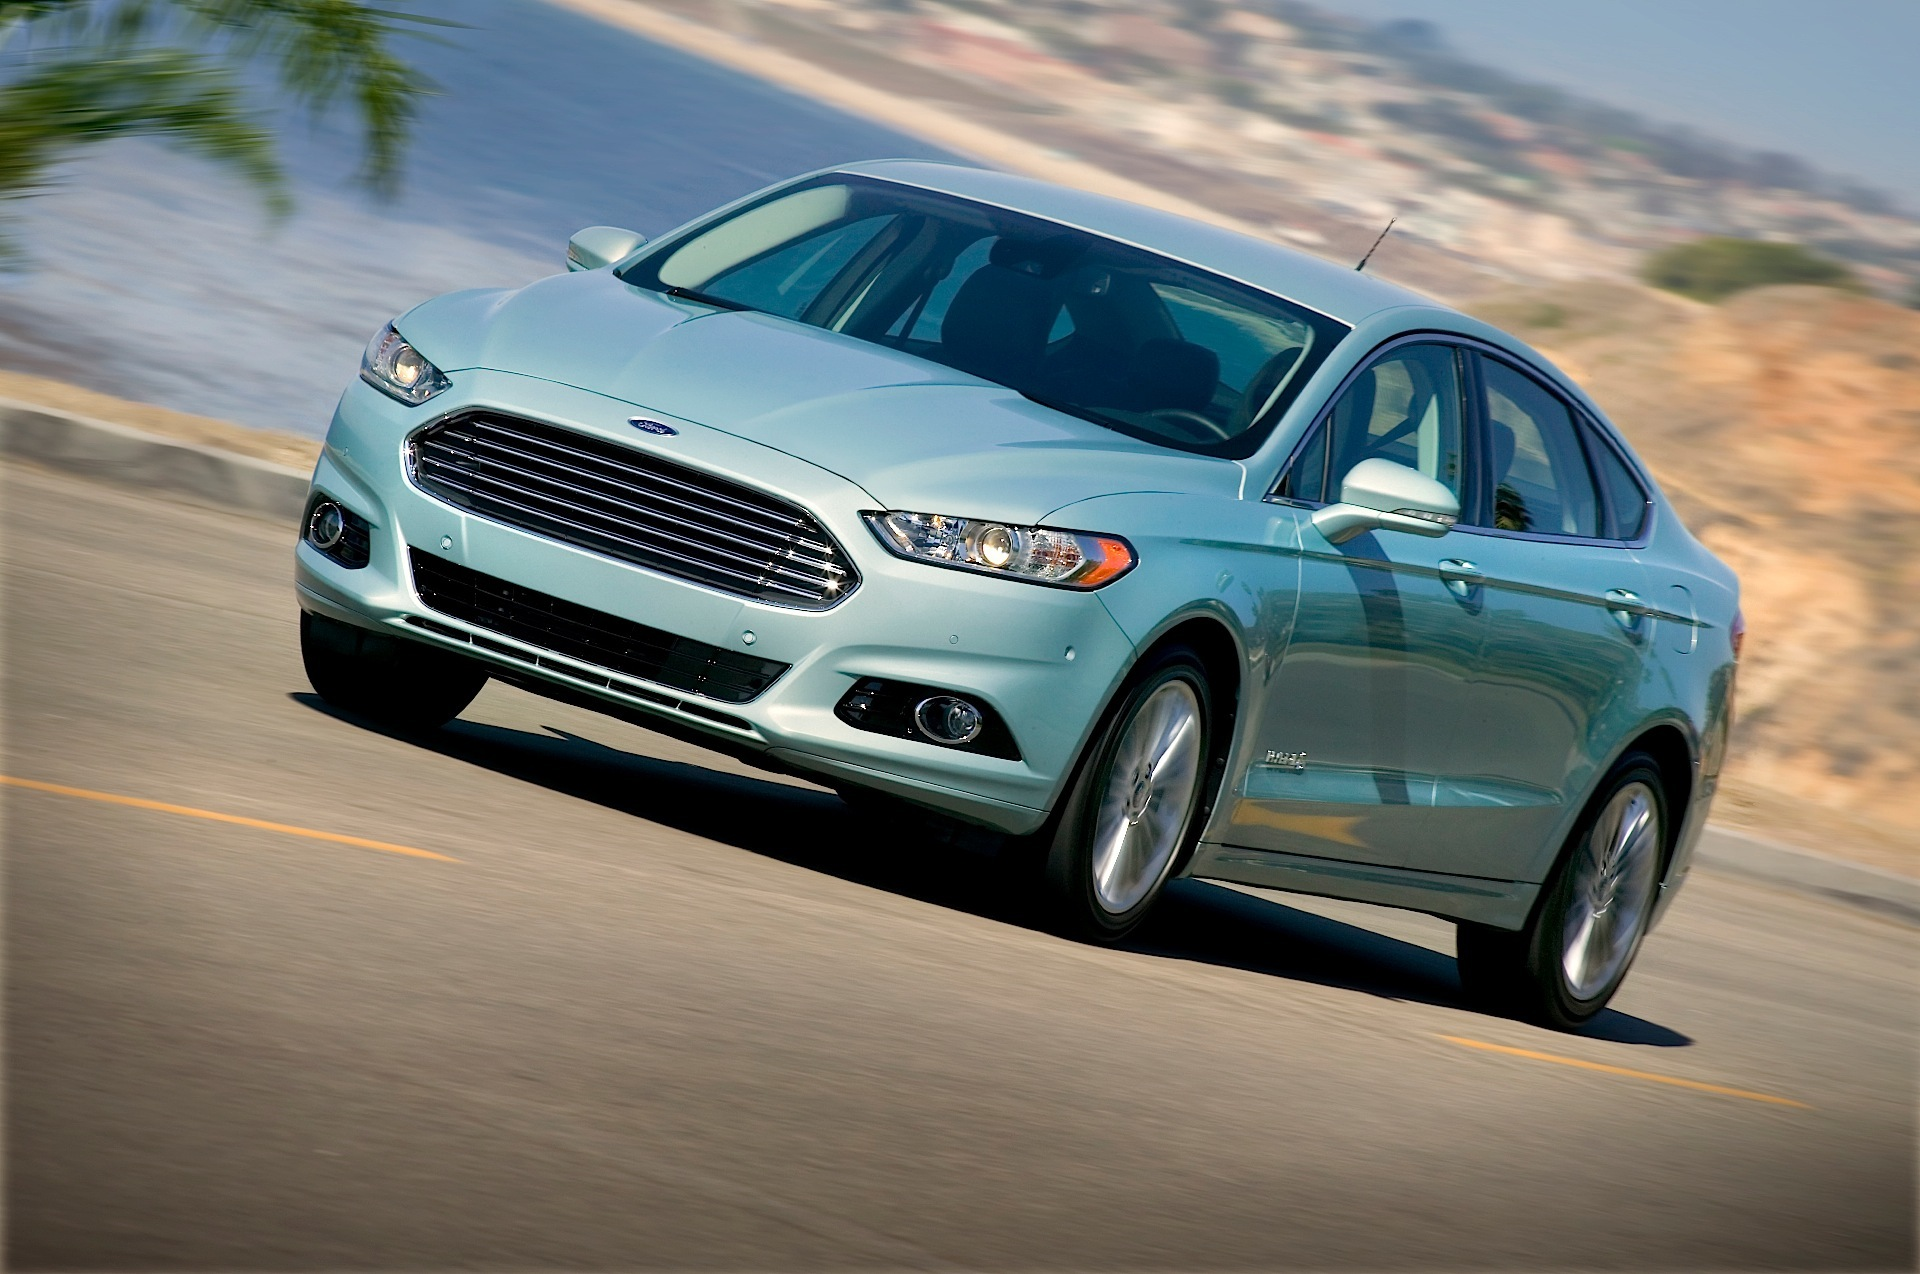 ford fusion hybrid specs 2012 2013 2014 2015 2016 autoevolution. Black Bedroom Furniture Sets. Home Design Ideas